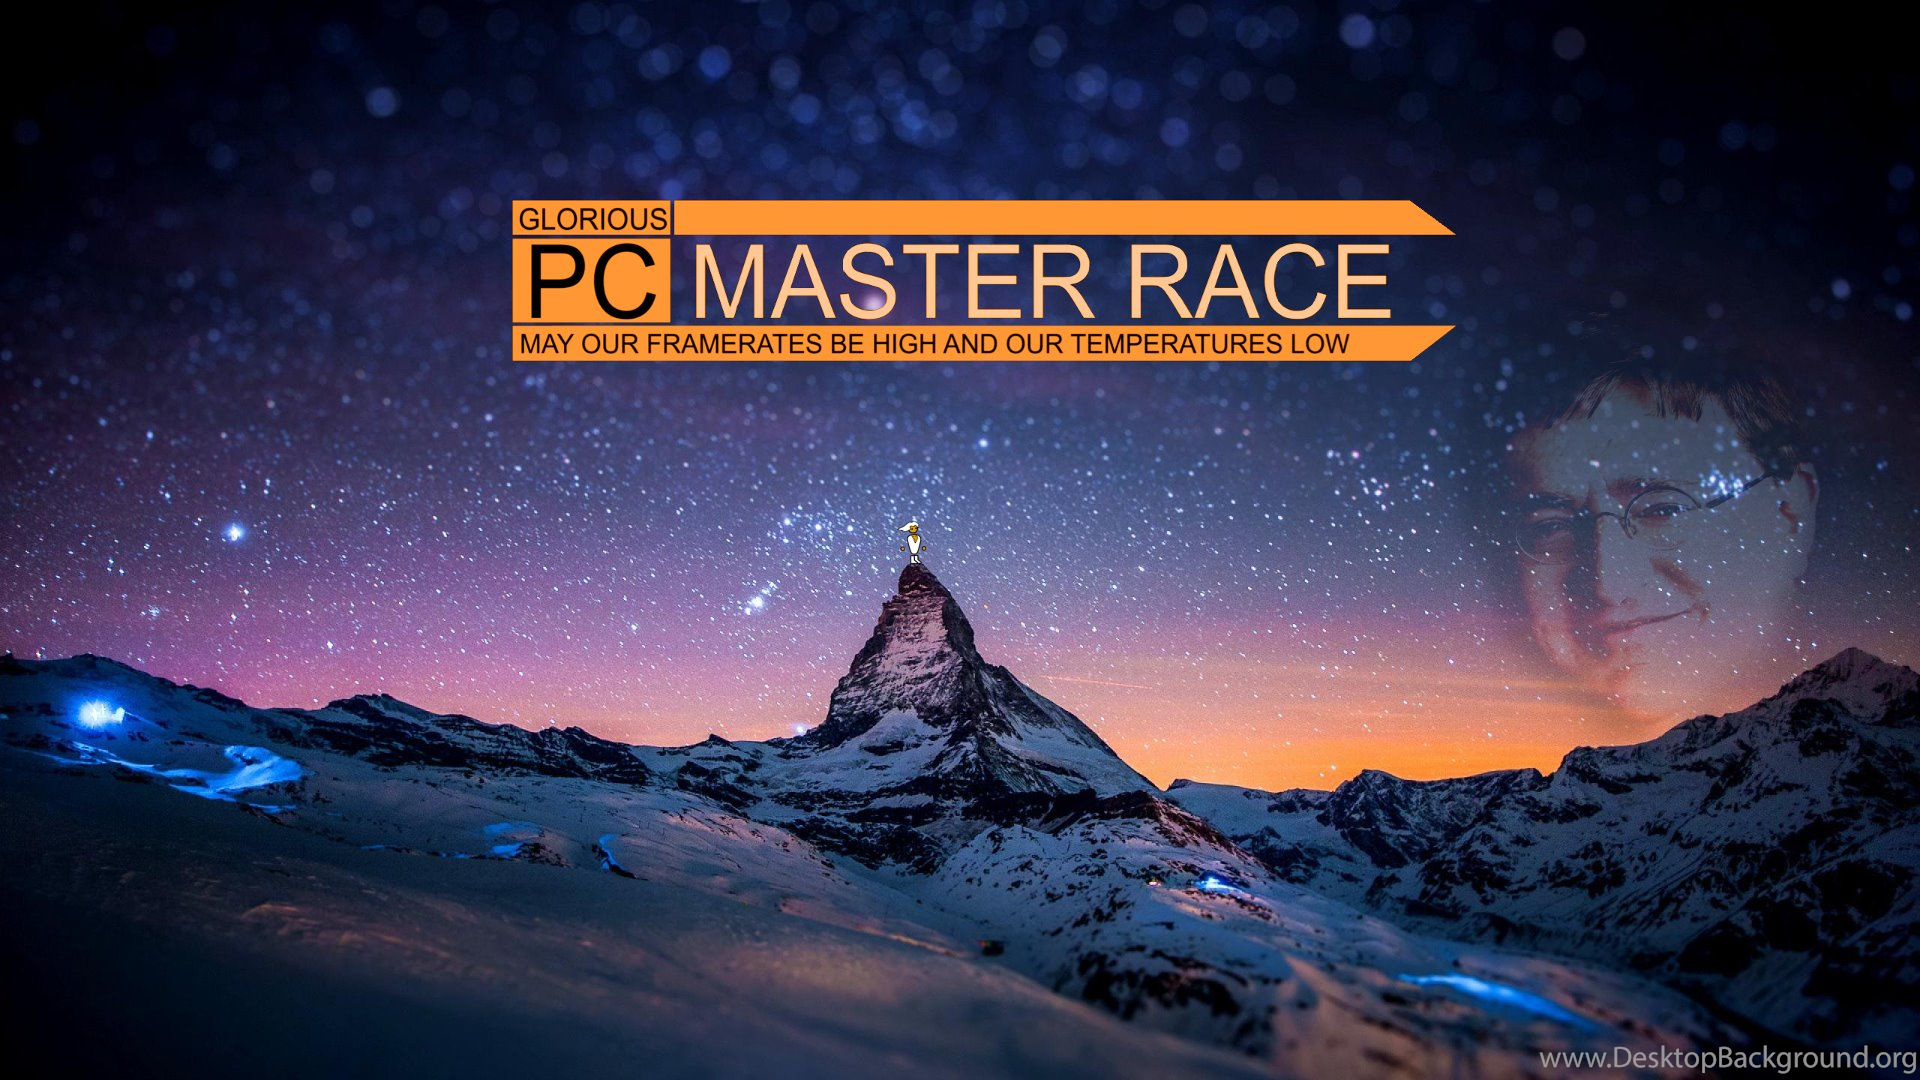 I Made A Wallpapers For My Brethren To Enjoy Pcmasterrace